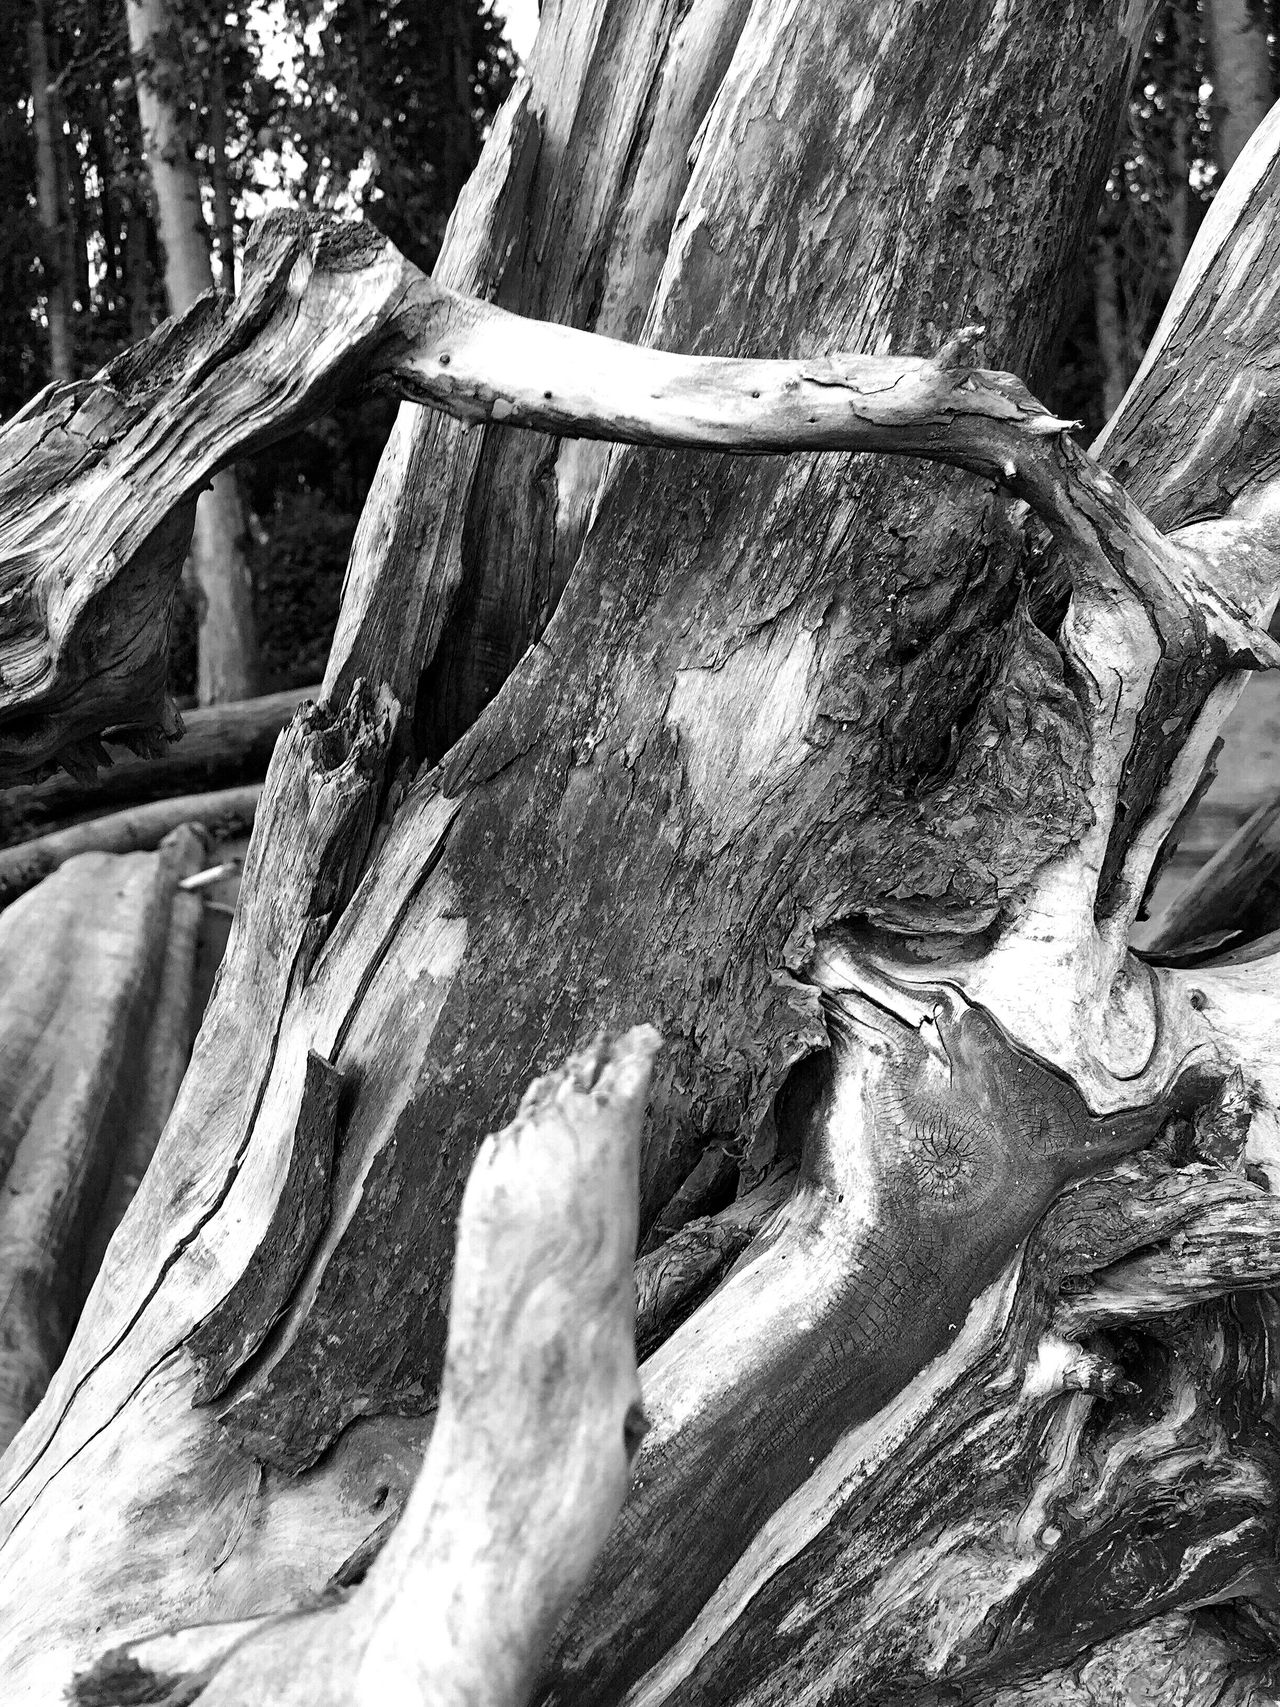 Abstract Nature Textures And Surfaces Landscape Photography Earth Porn Still Life Blackandwhite Photography Landscape #Nature #photography Abstractions Sunset #sun #clouds #skylovers #sky #nature #beautifulinnature #naturalbeauty #photography #landscape Beach Photography Views Perspective Nature Shapes In Nature  Landscape_photography Nature Photography Inside Driftwood Black And White Tree Porn Driftwood Black & White Patterns In Nature Patterns & Textures Blackandwhite